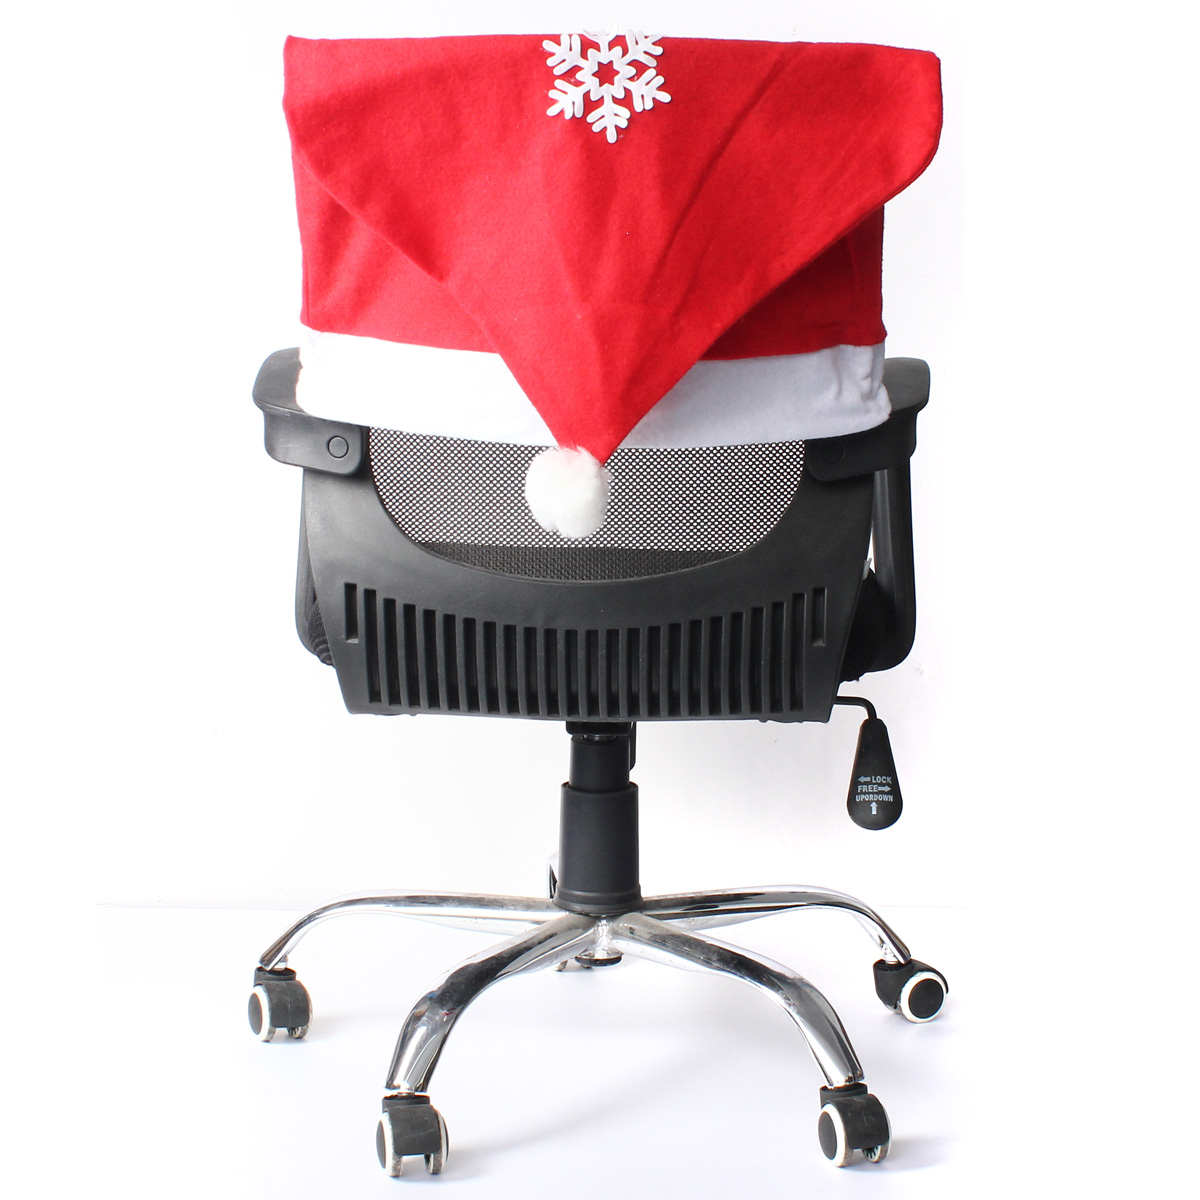 kitchen chair seat covers modern outdoor lounge chairs christmas snowflake decals cover dinner